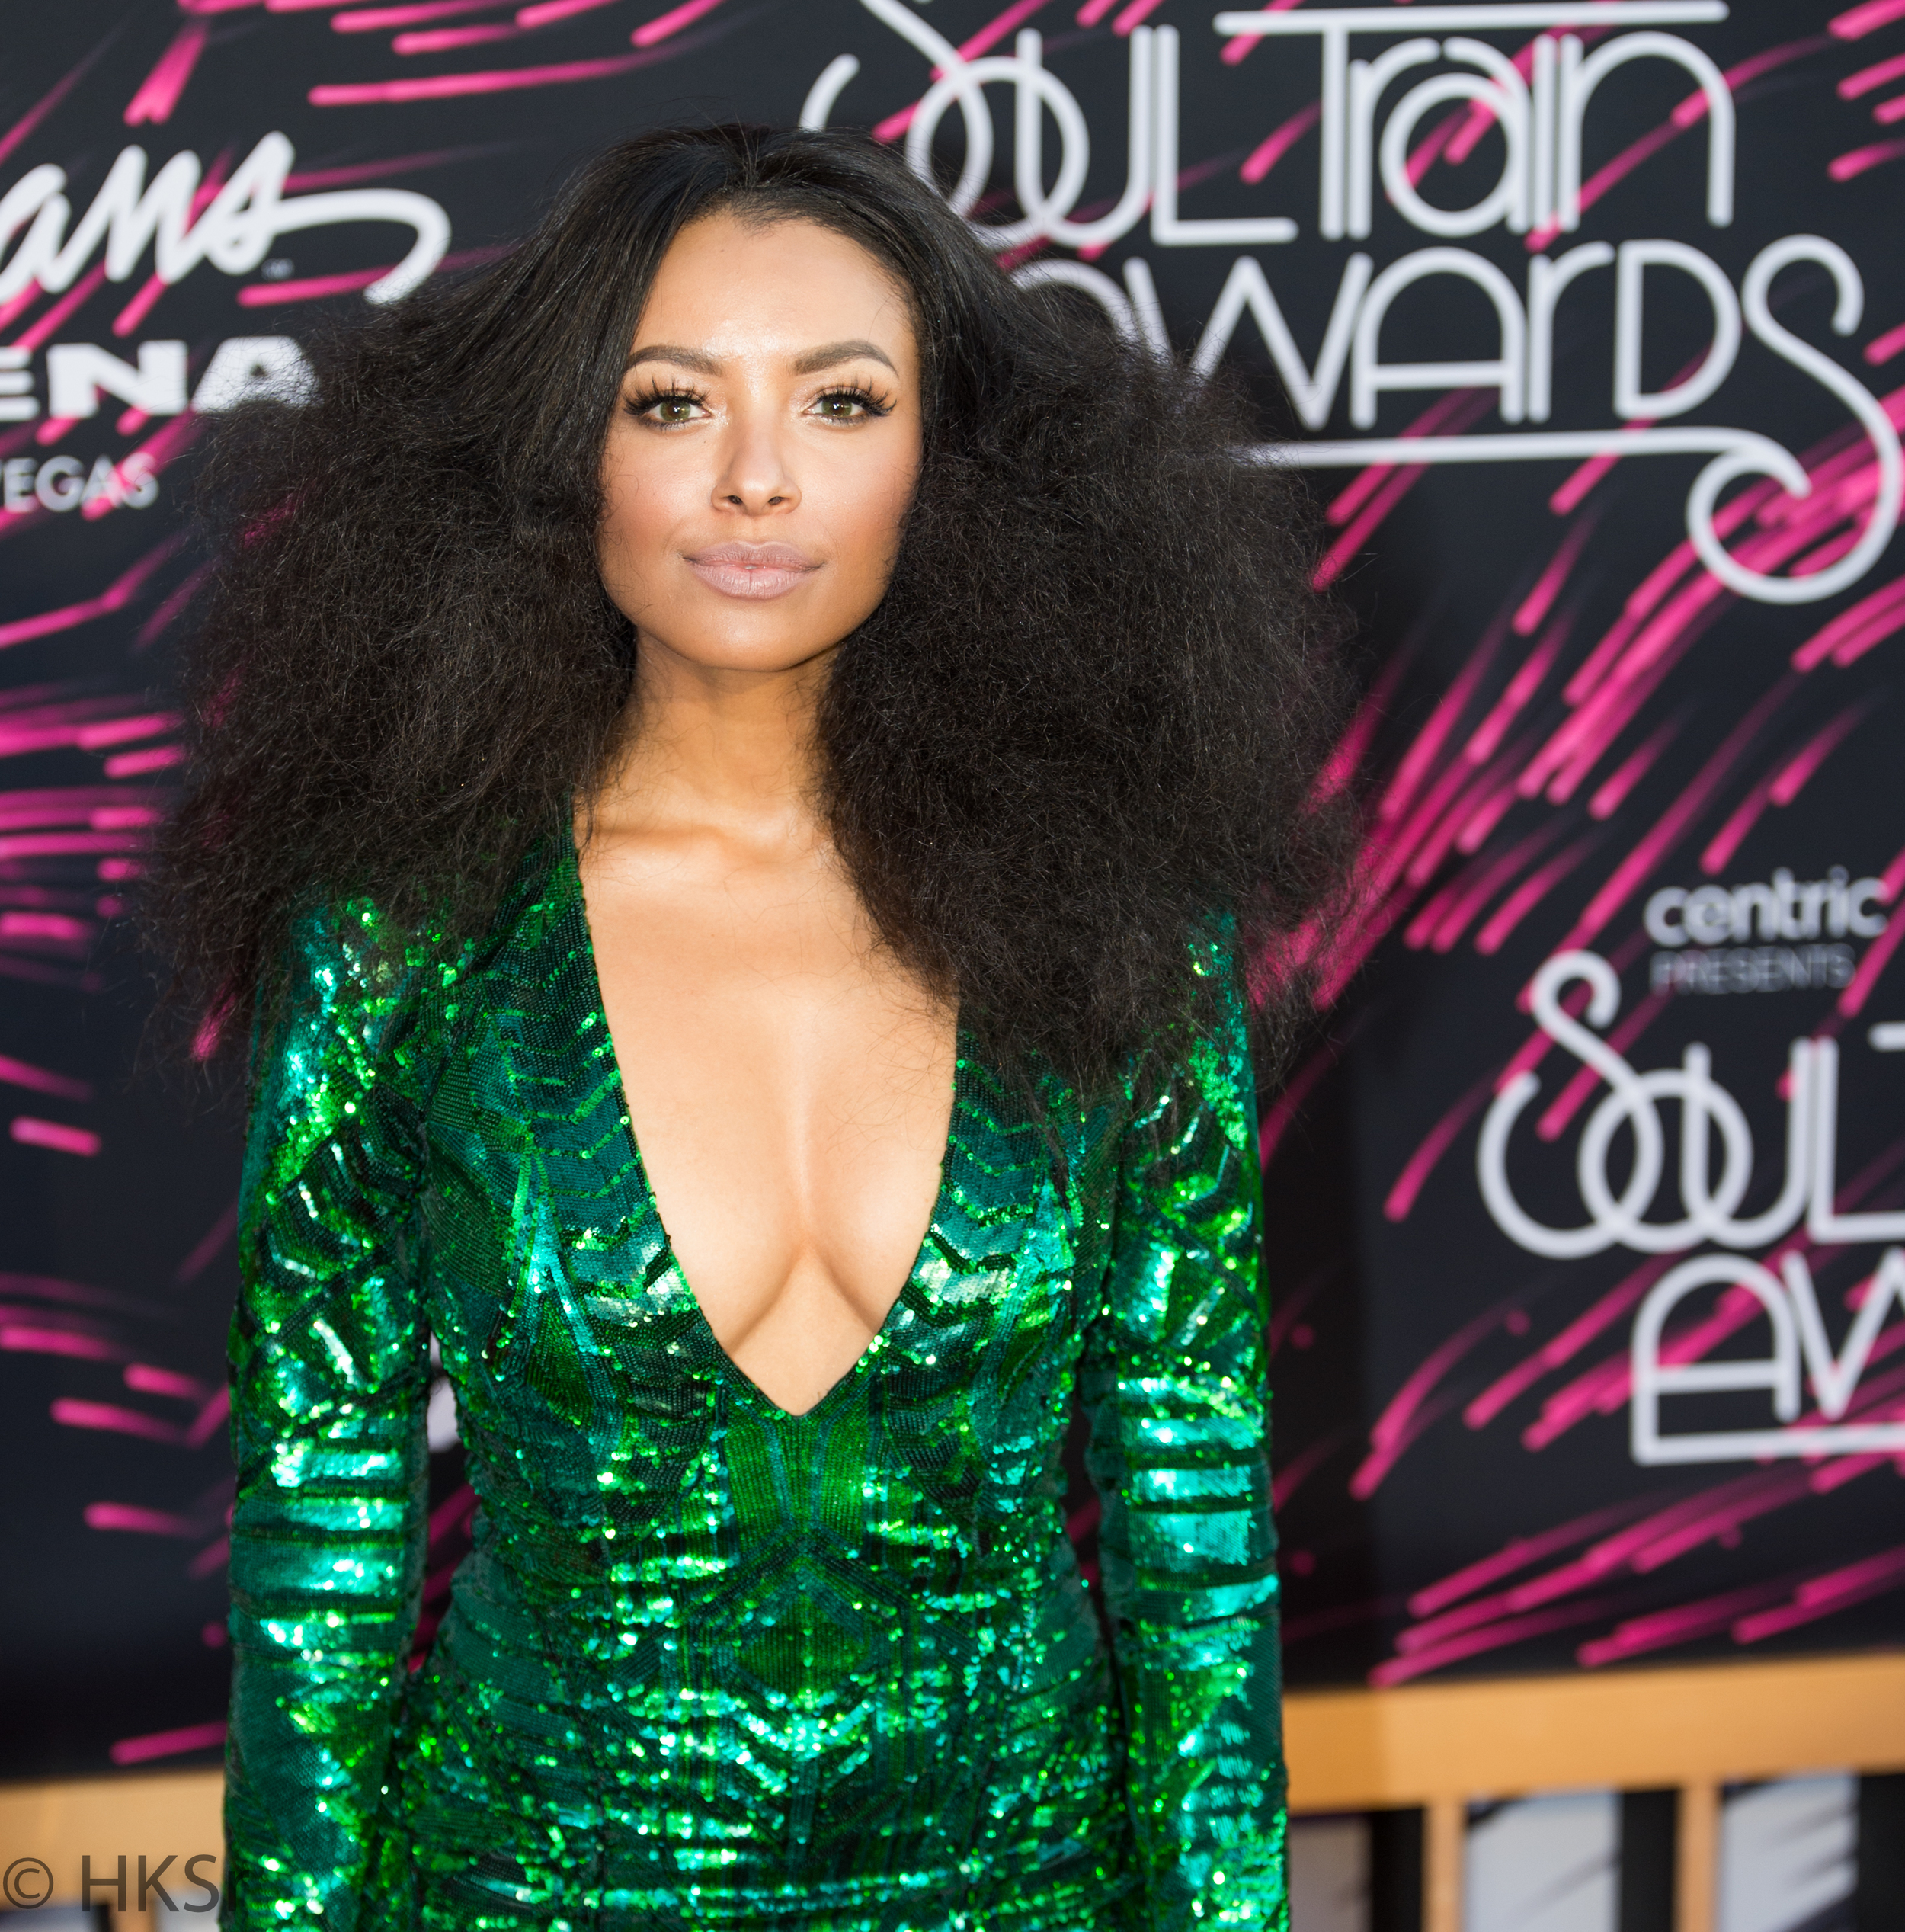 Kat Graham on the red carpet at the Soul Train Awards